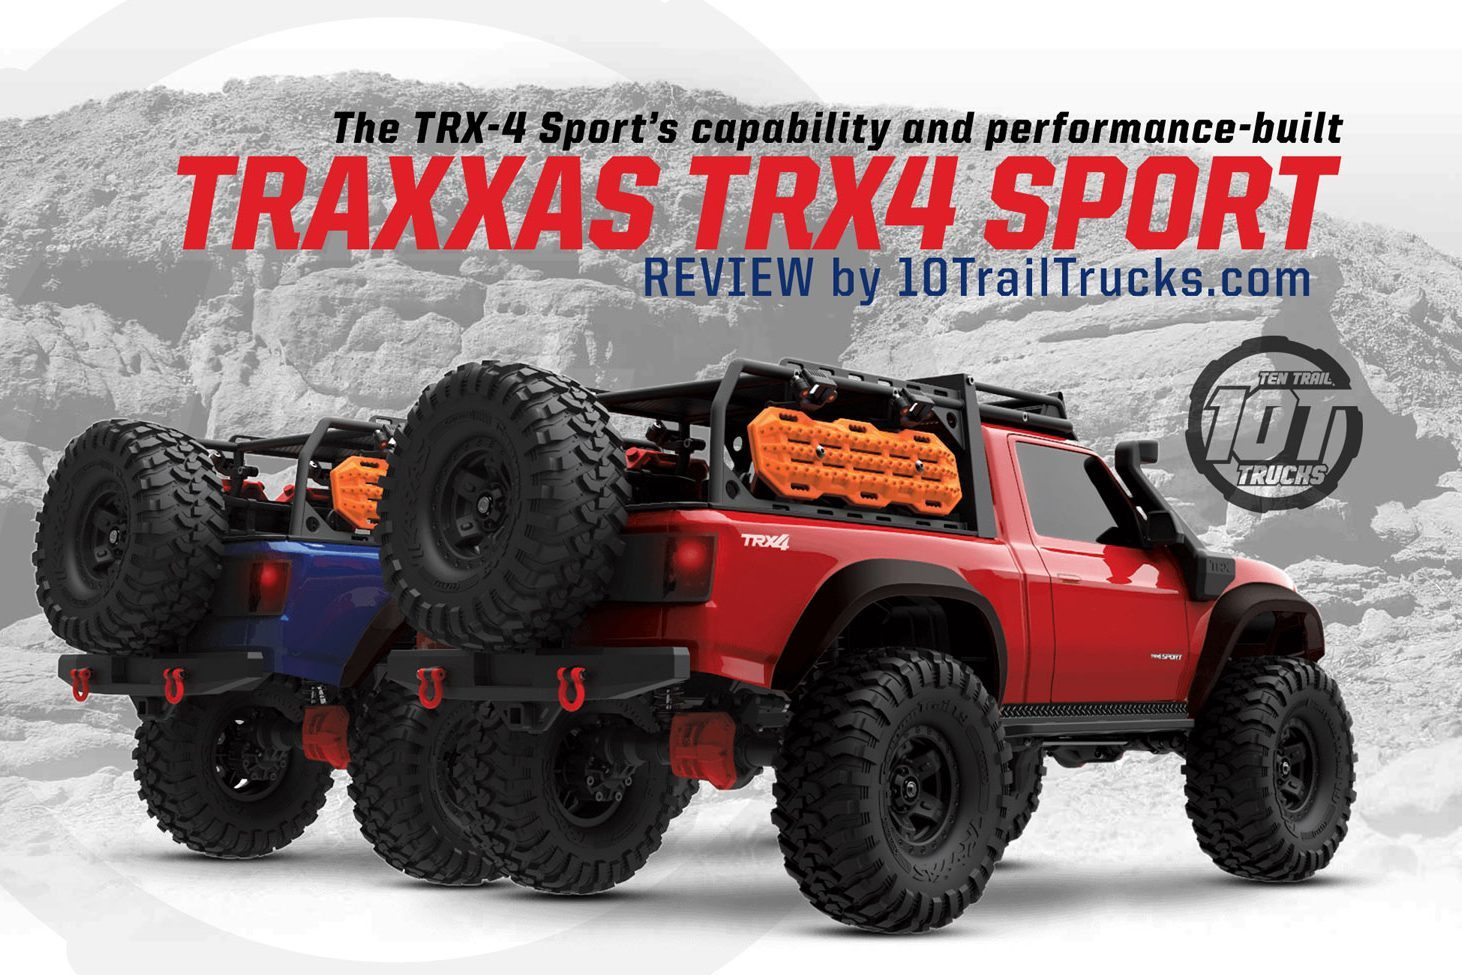 Traxxas TRX-4 Sport Review – Amazing performance with an affordable price tag